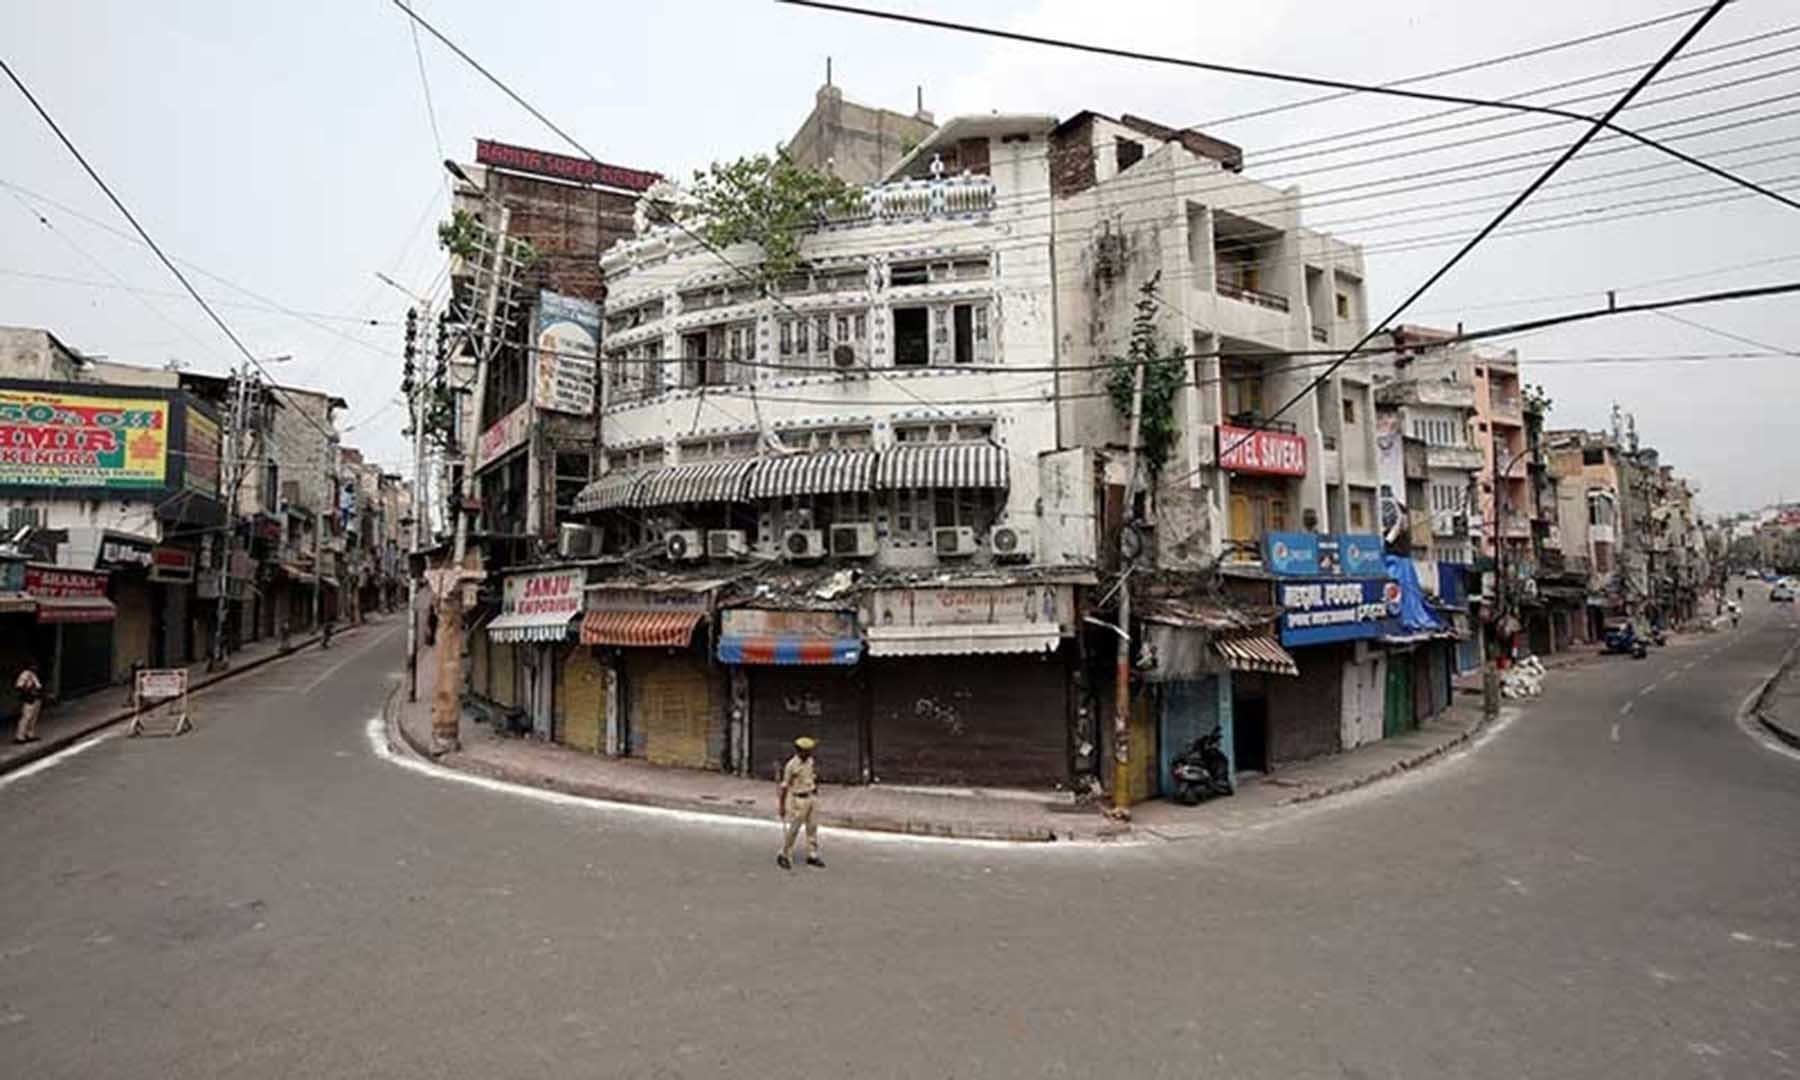 Indian policemen stand guard in a deserted street during restrictions in occupied Kashmir on Aug 6. — Reuters